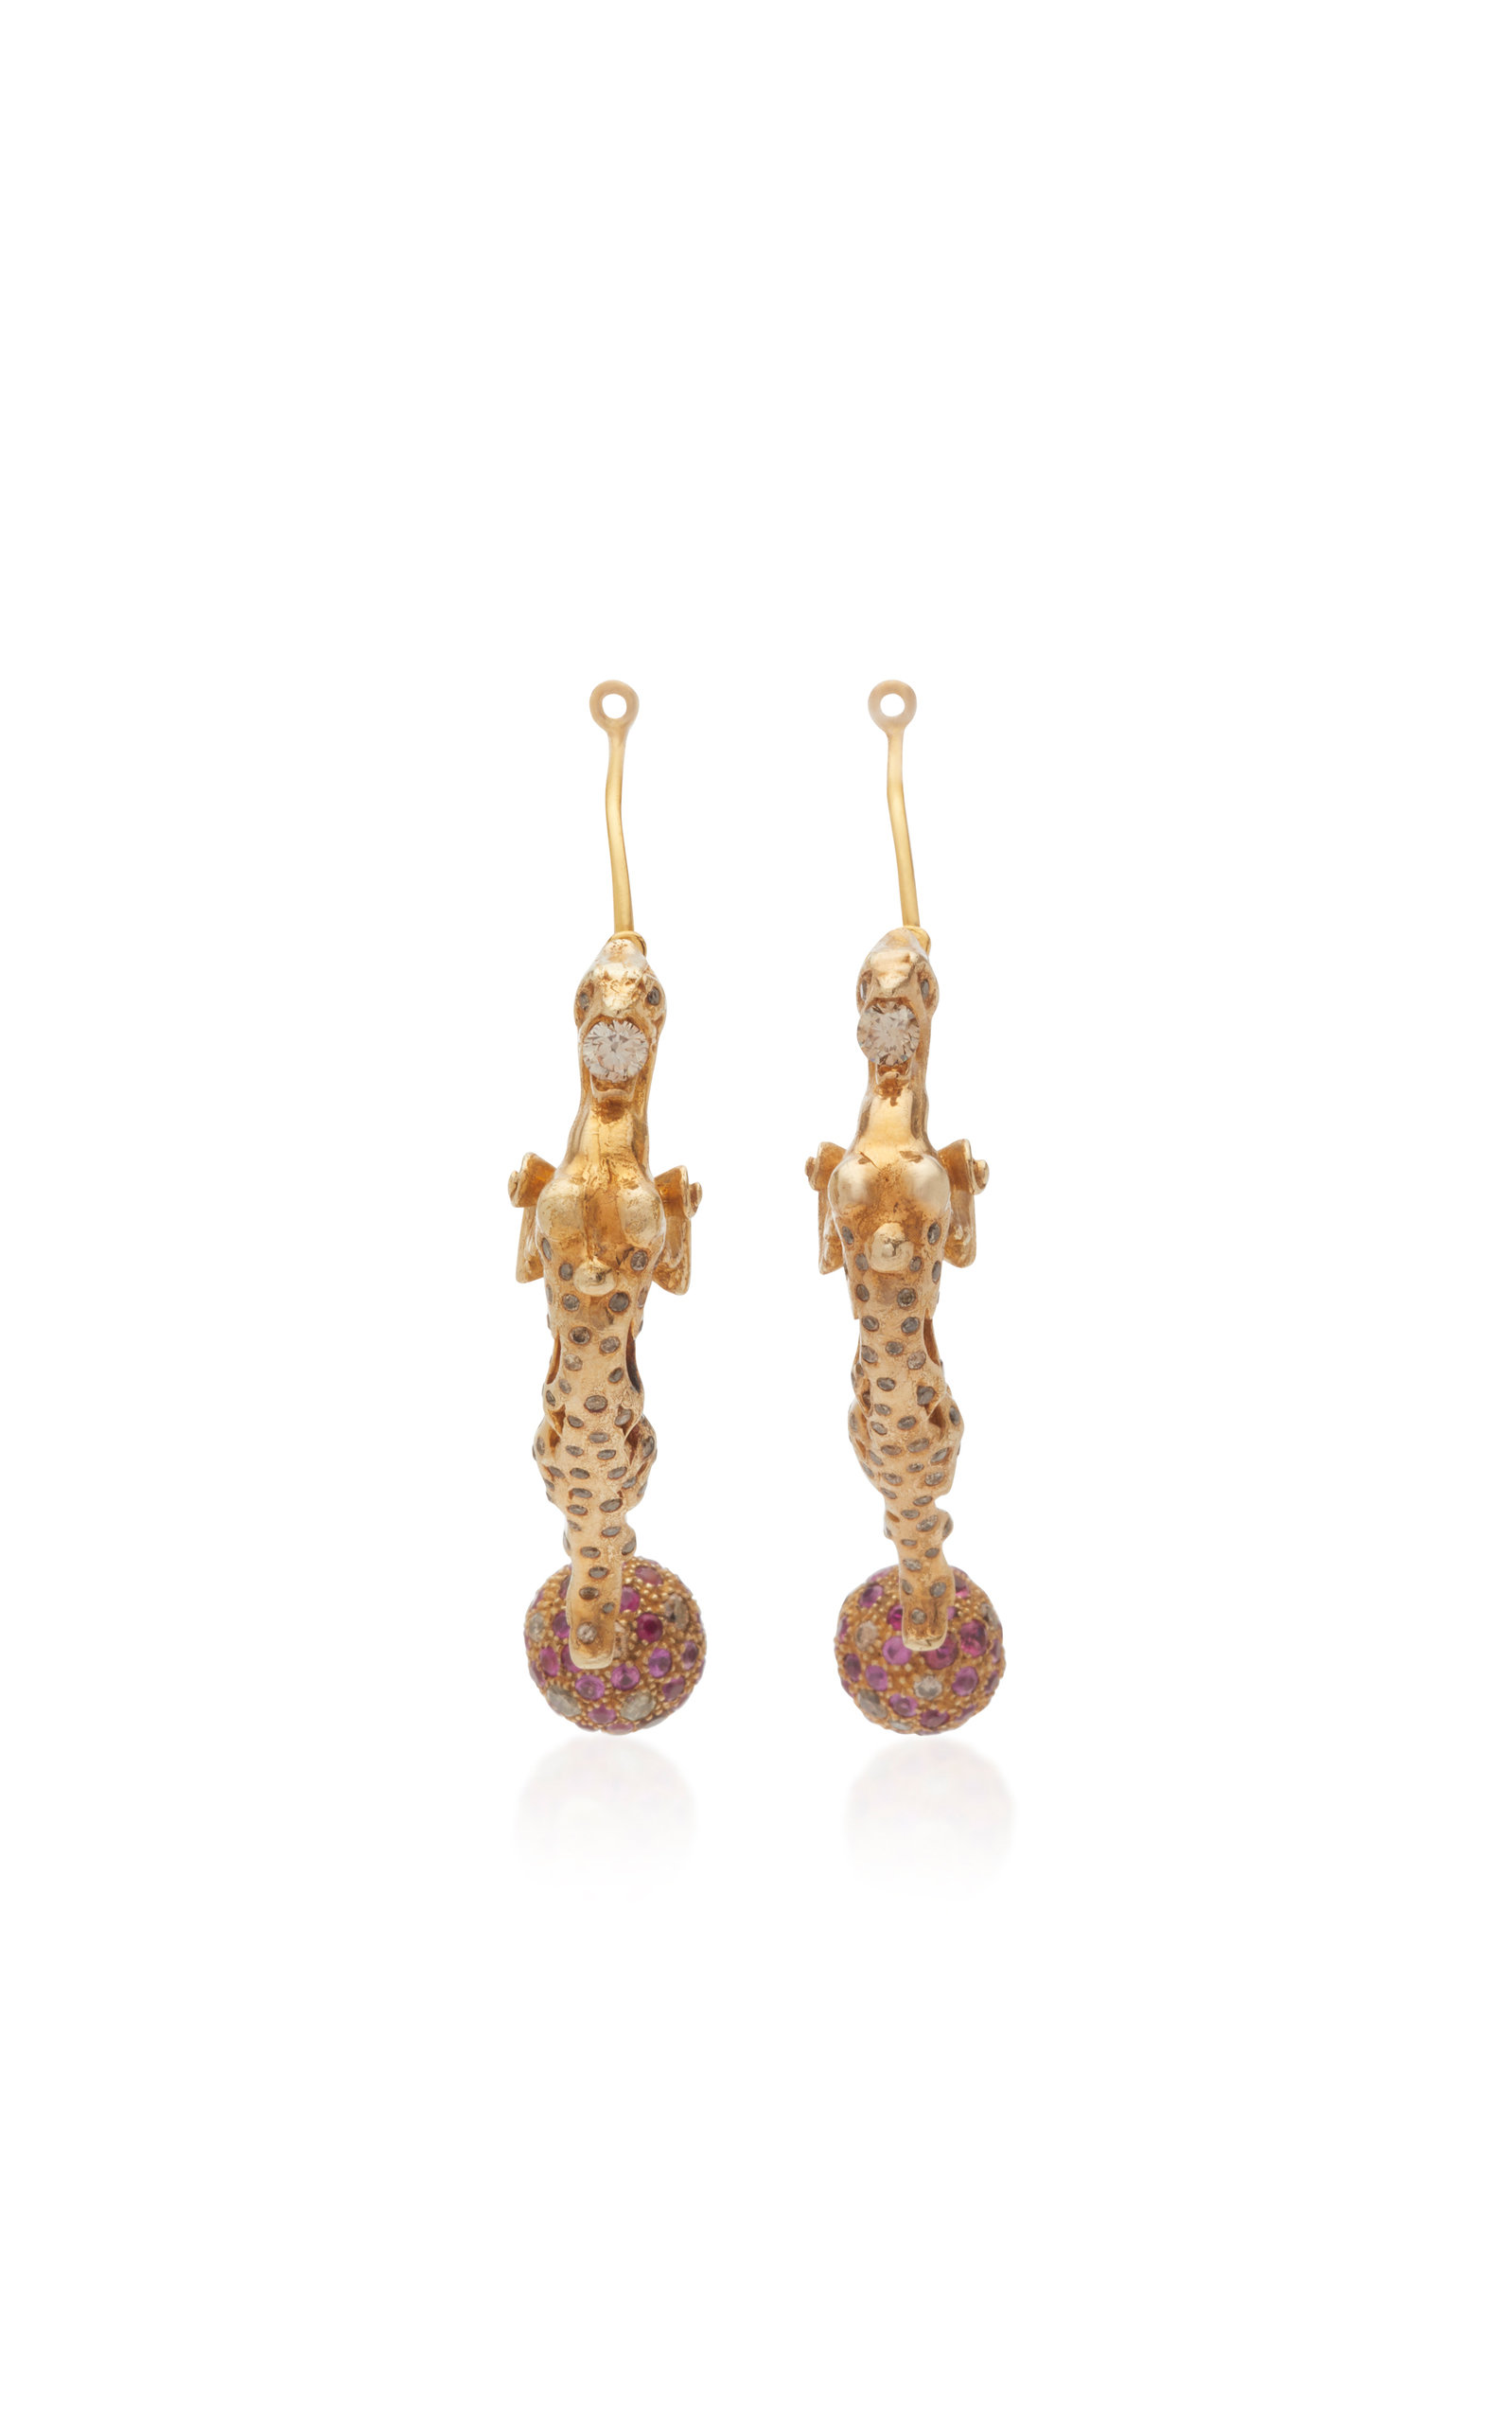 SYLVIE CORBELIN Chimera 18K Gold Ruby And Diamond Earrings